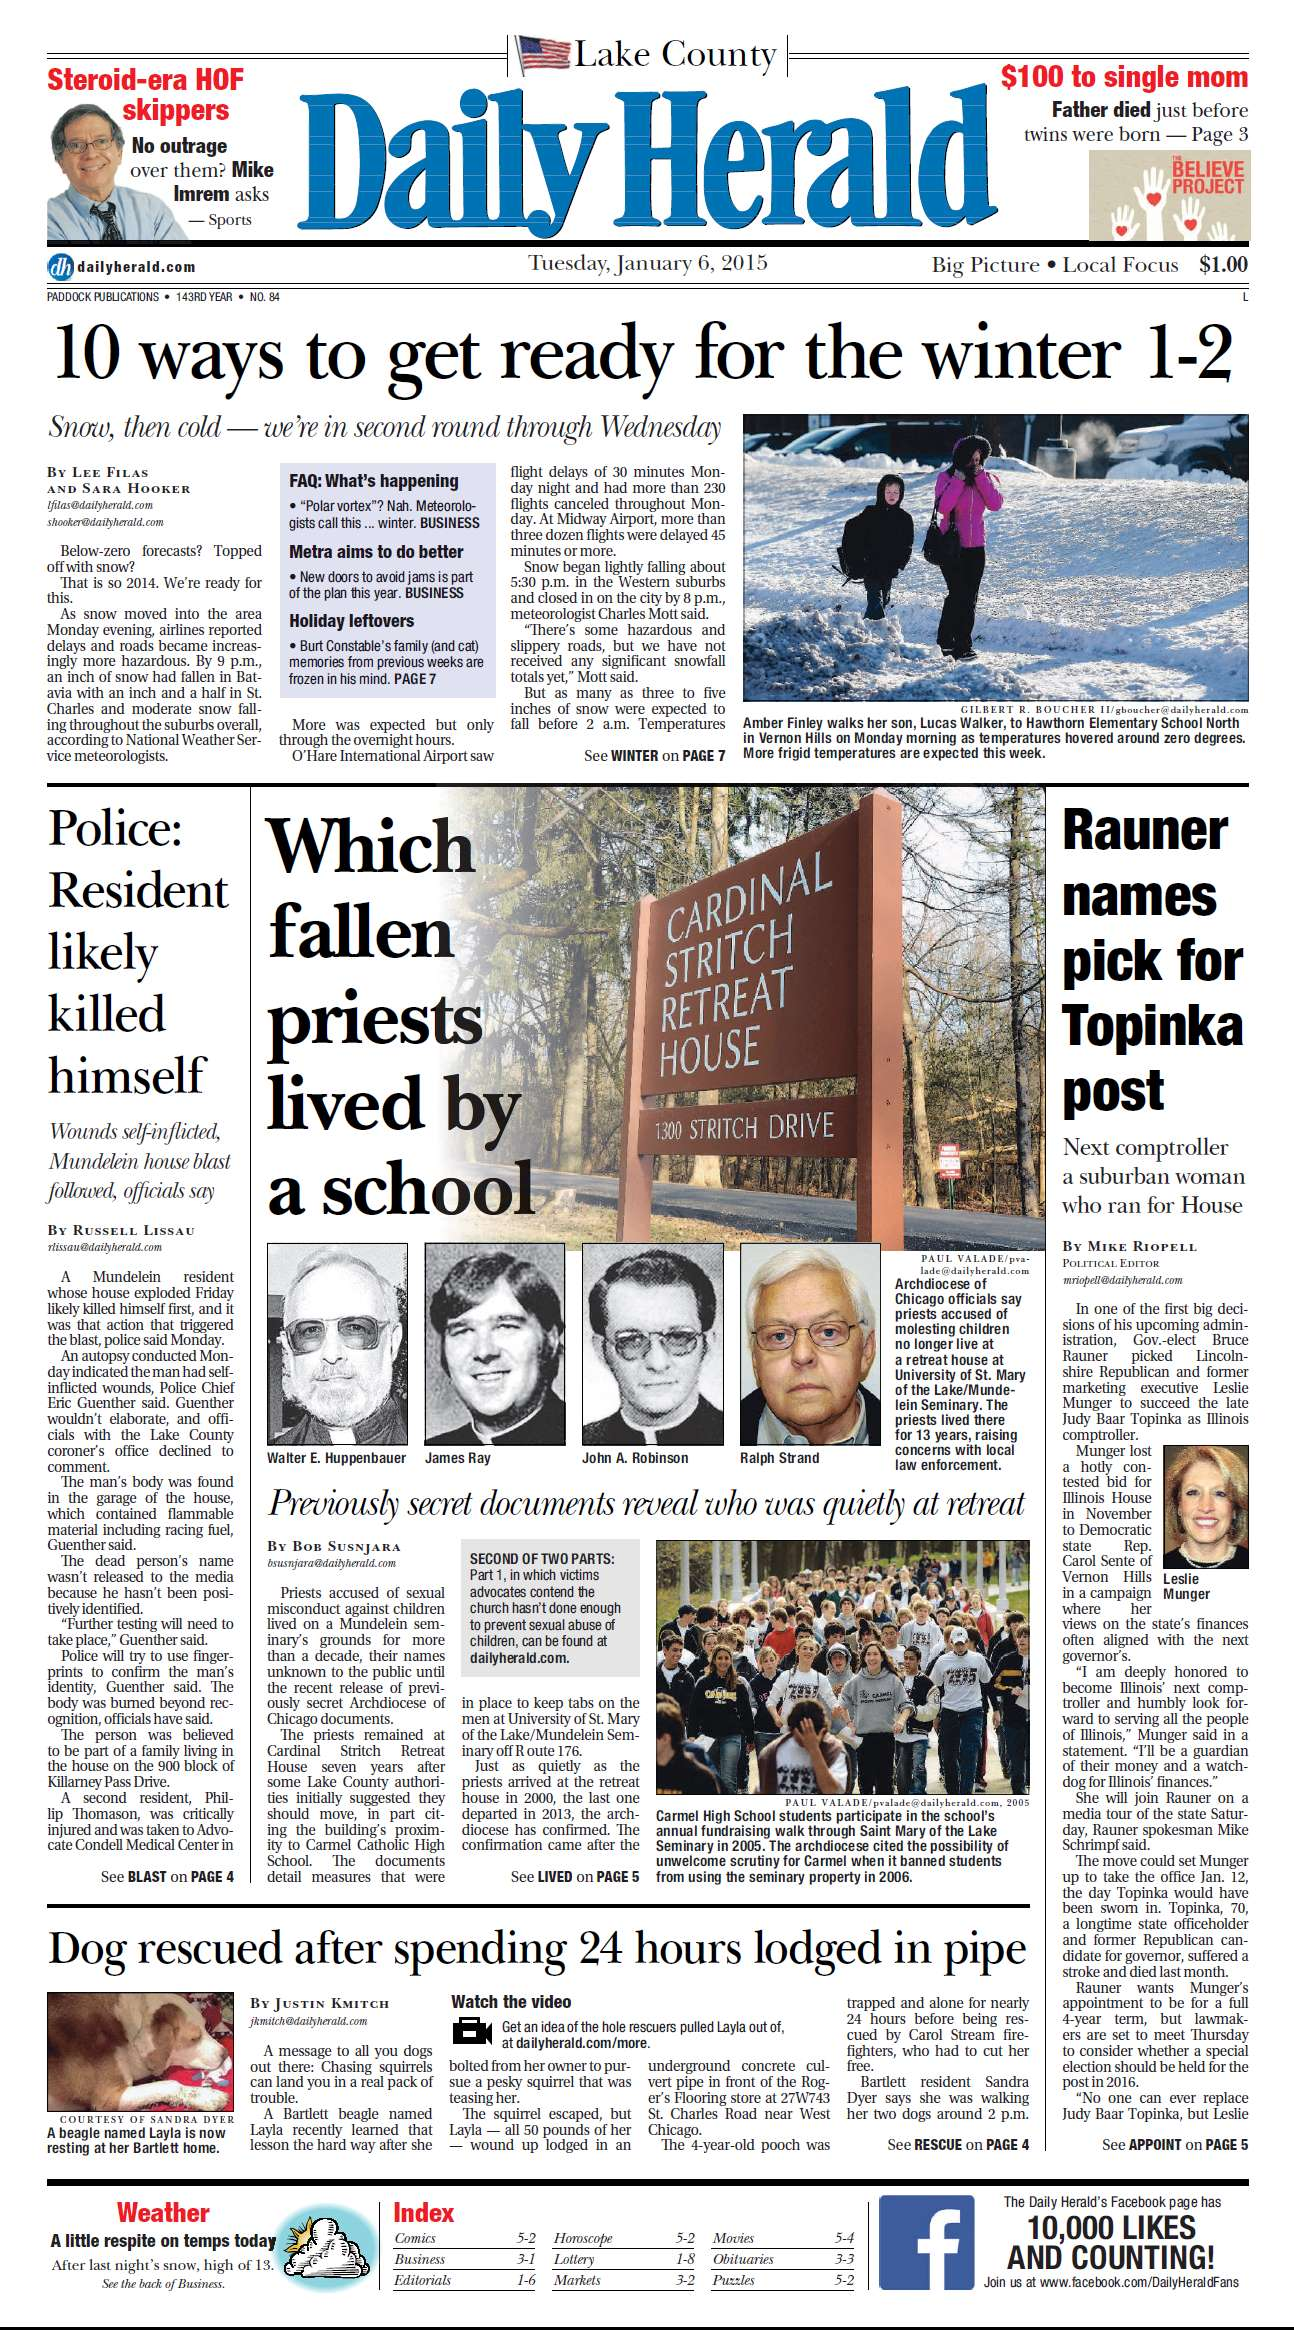 Daily Herald  January 06 2015 free download